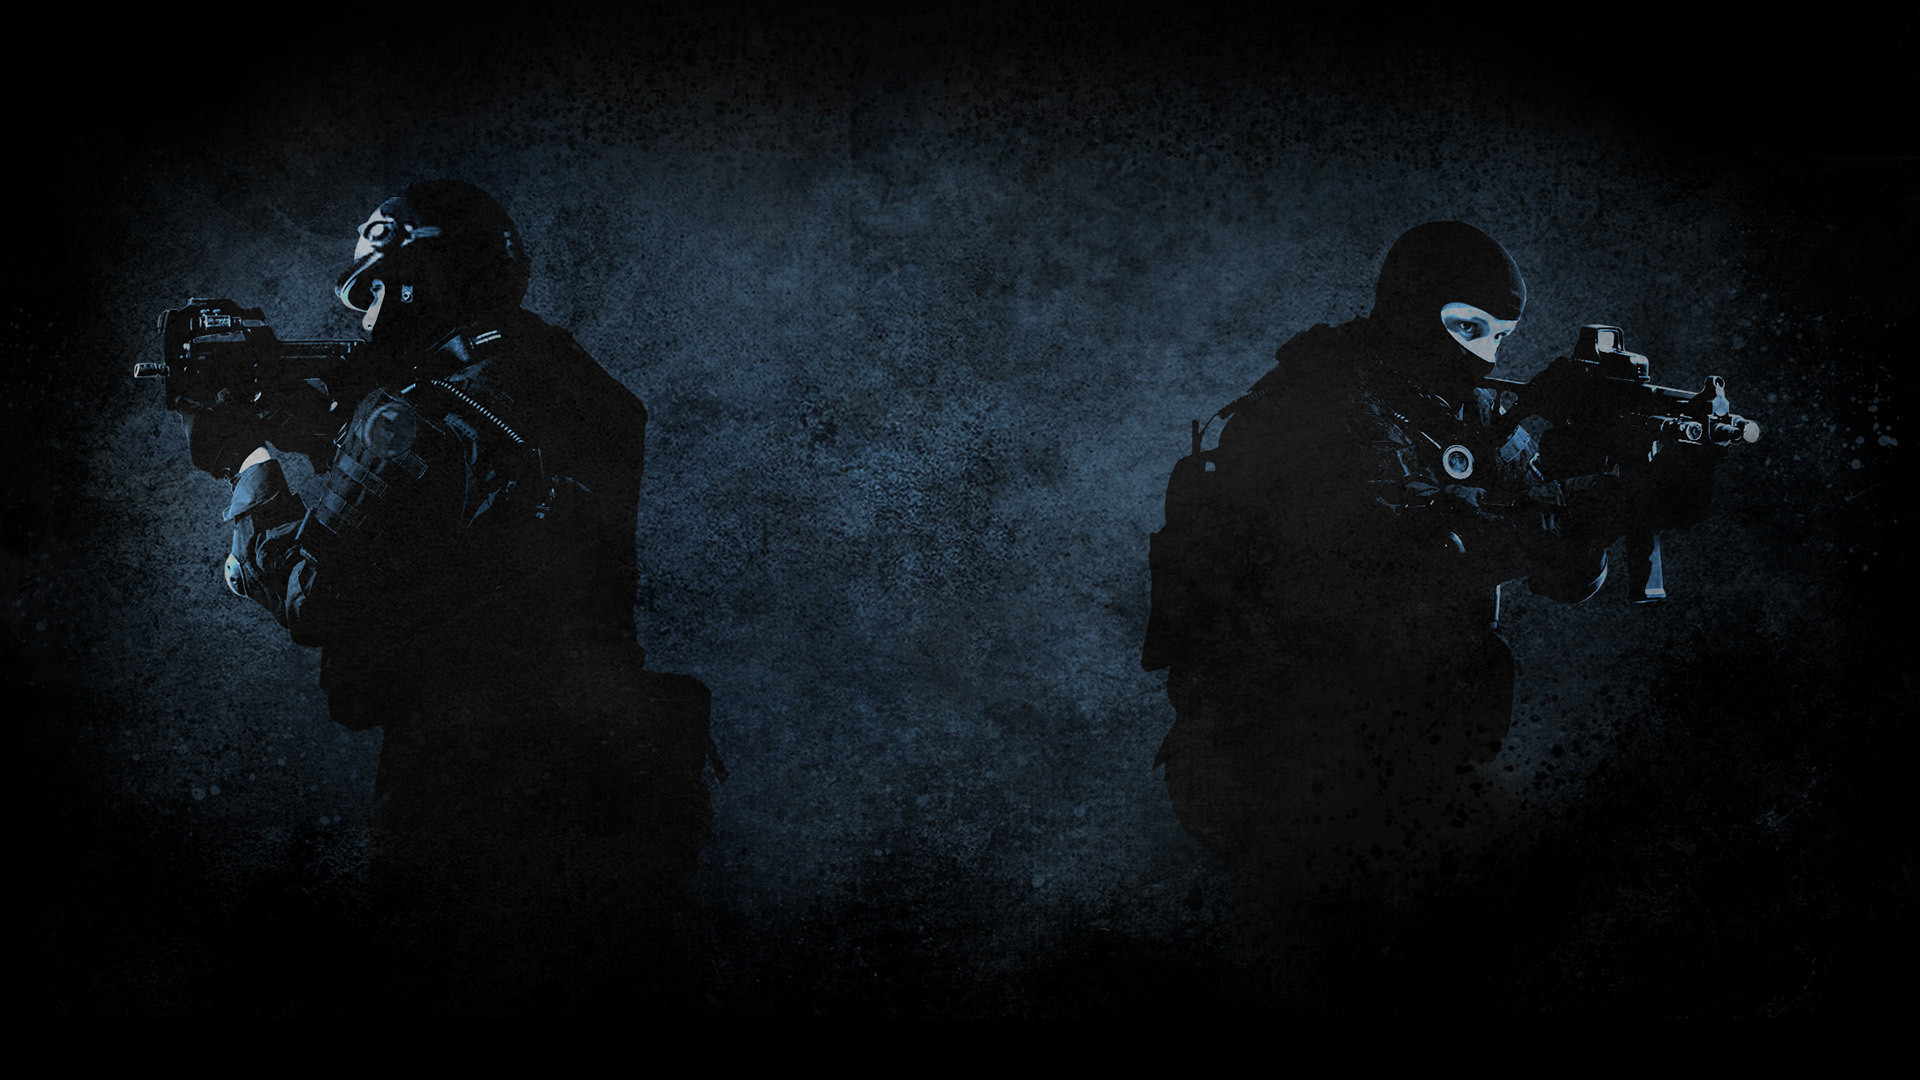 1920x1080 cs go wallpaper A4